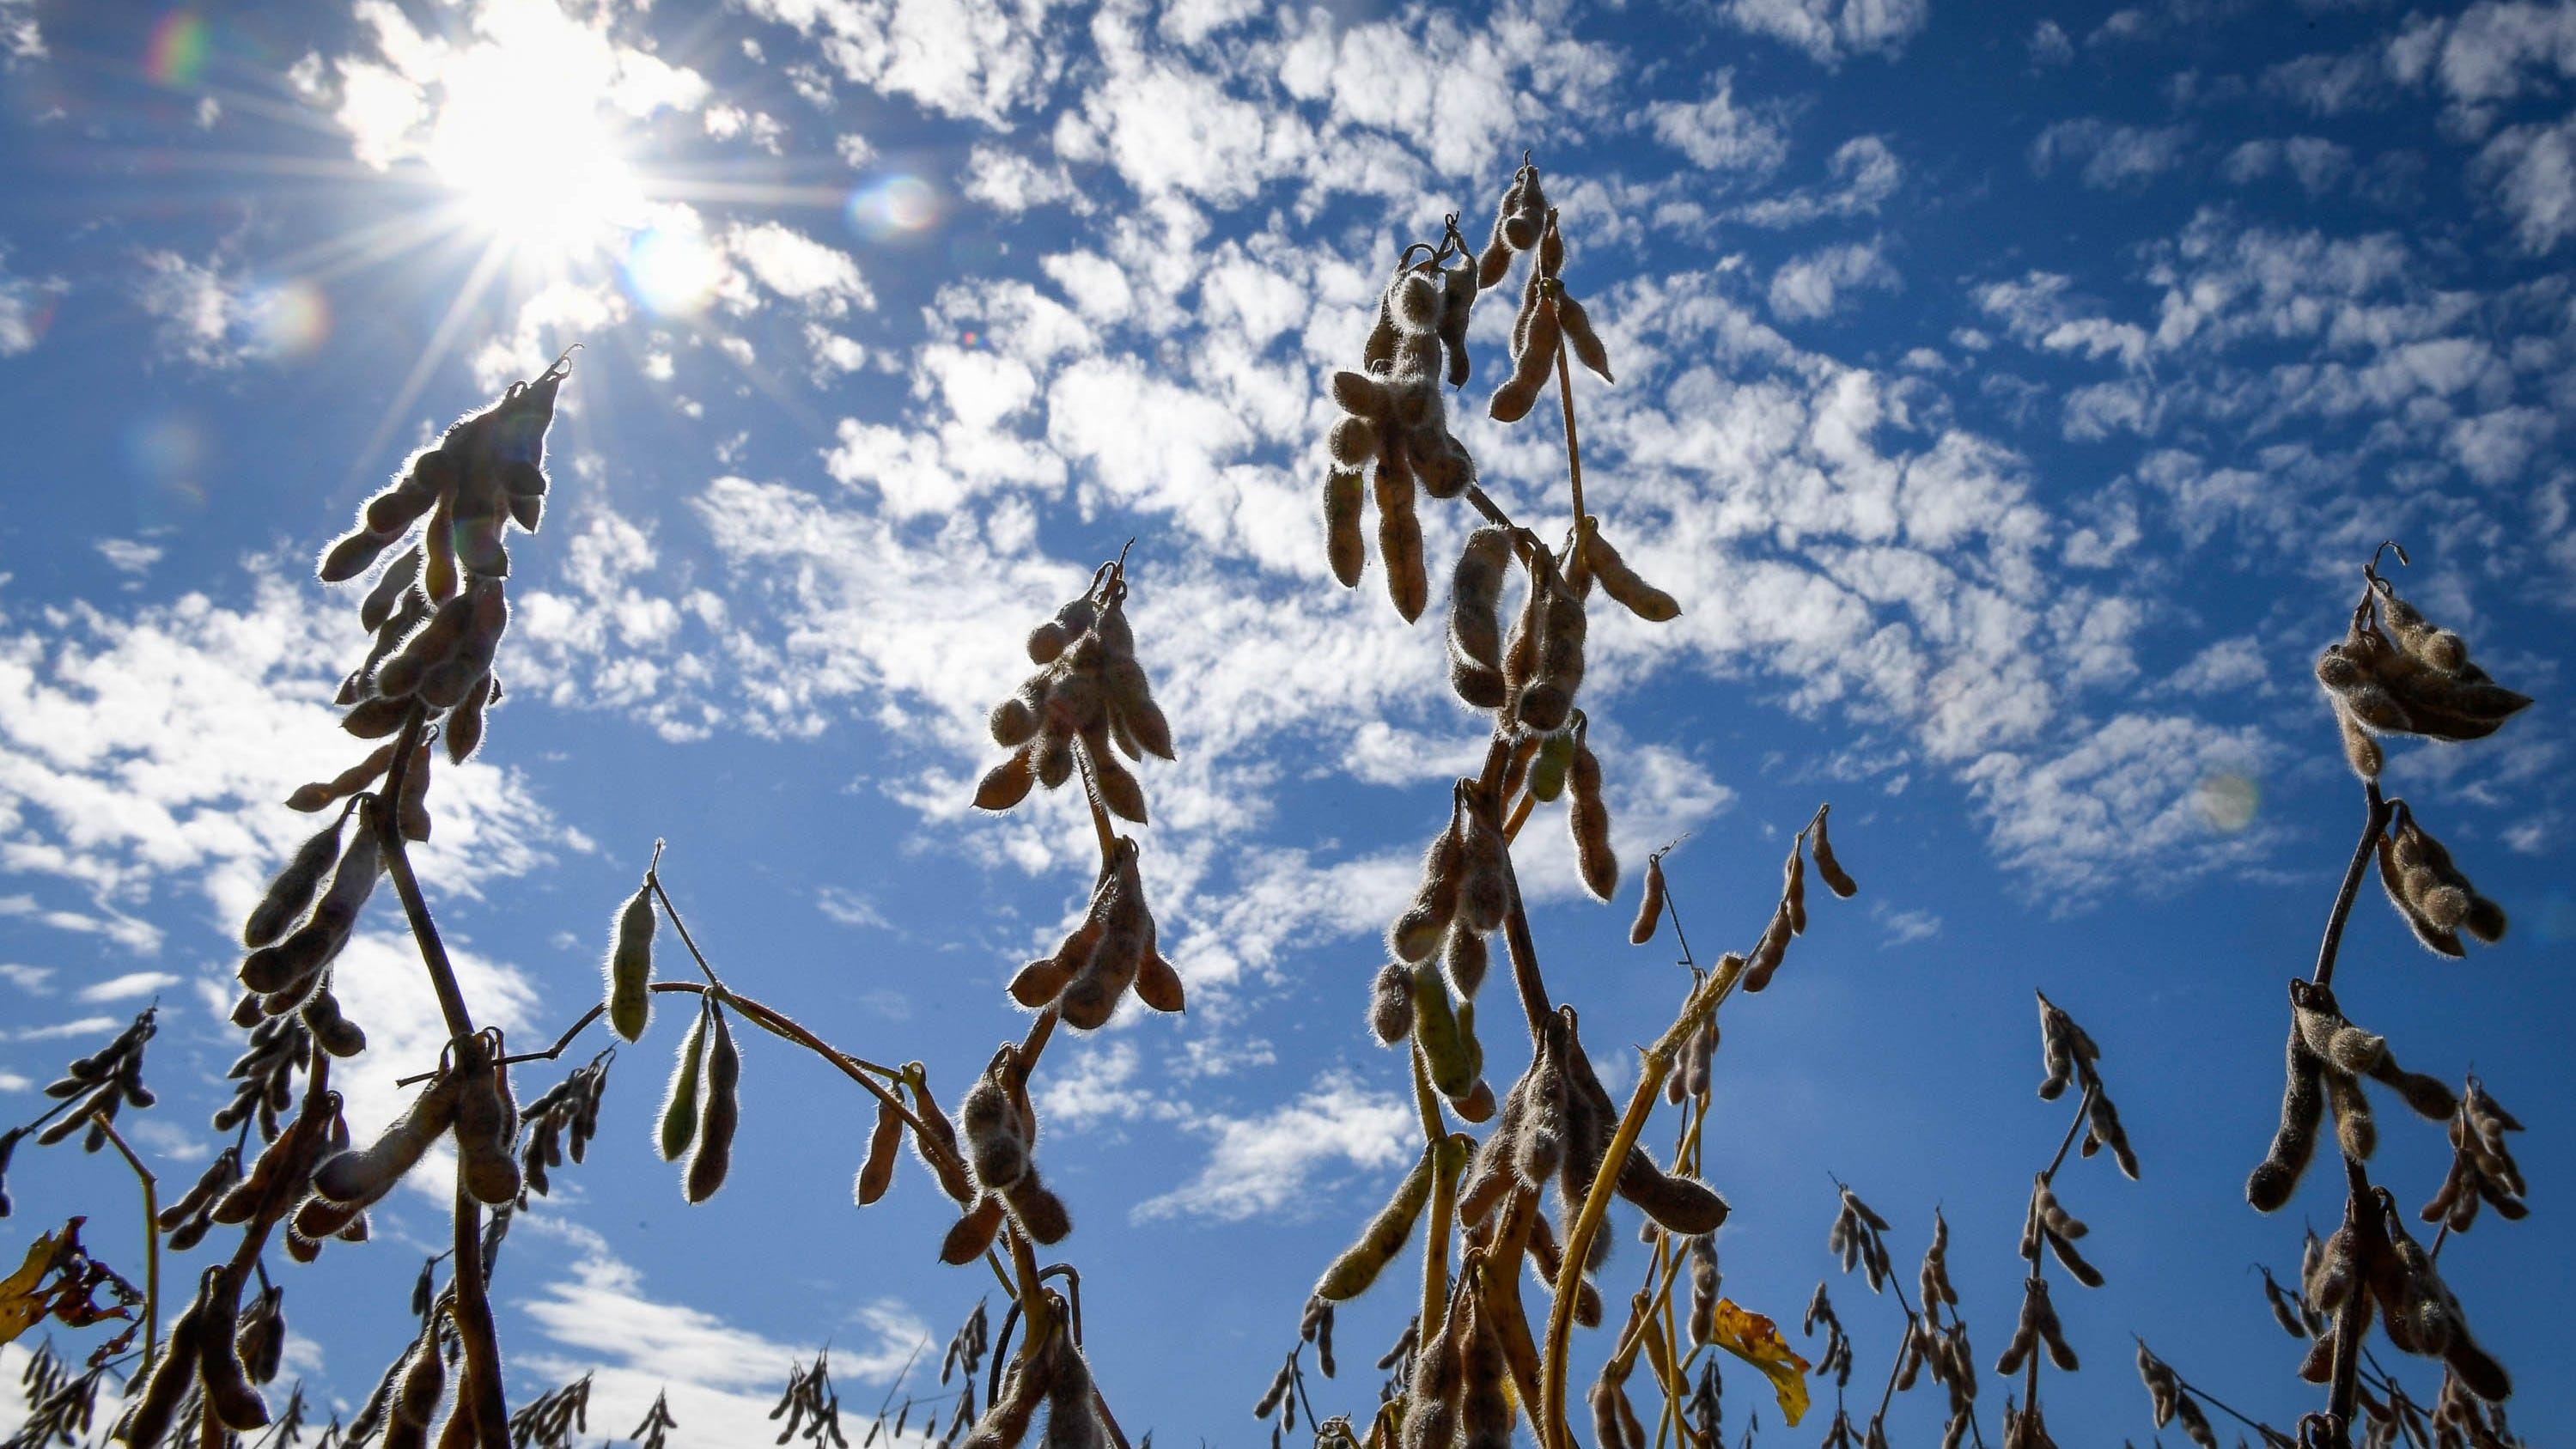 Soybeans: China trade war 'couldn't come at a worst time' for South Dakota bumper crop